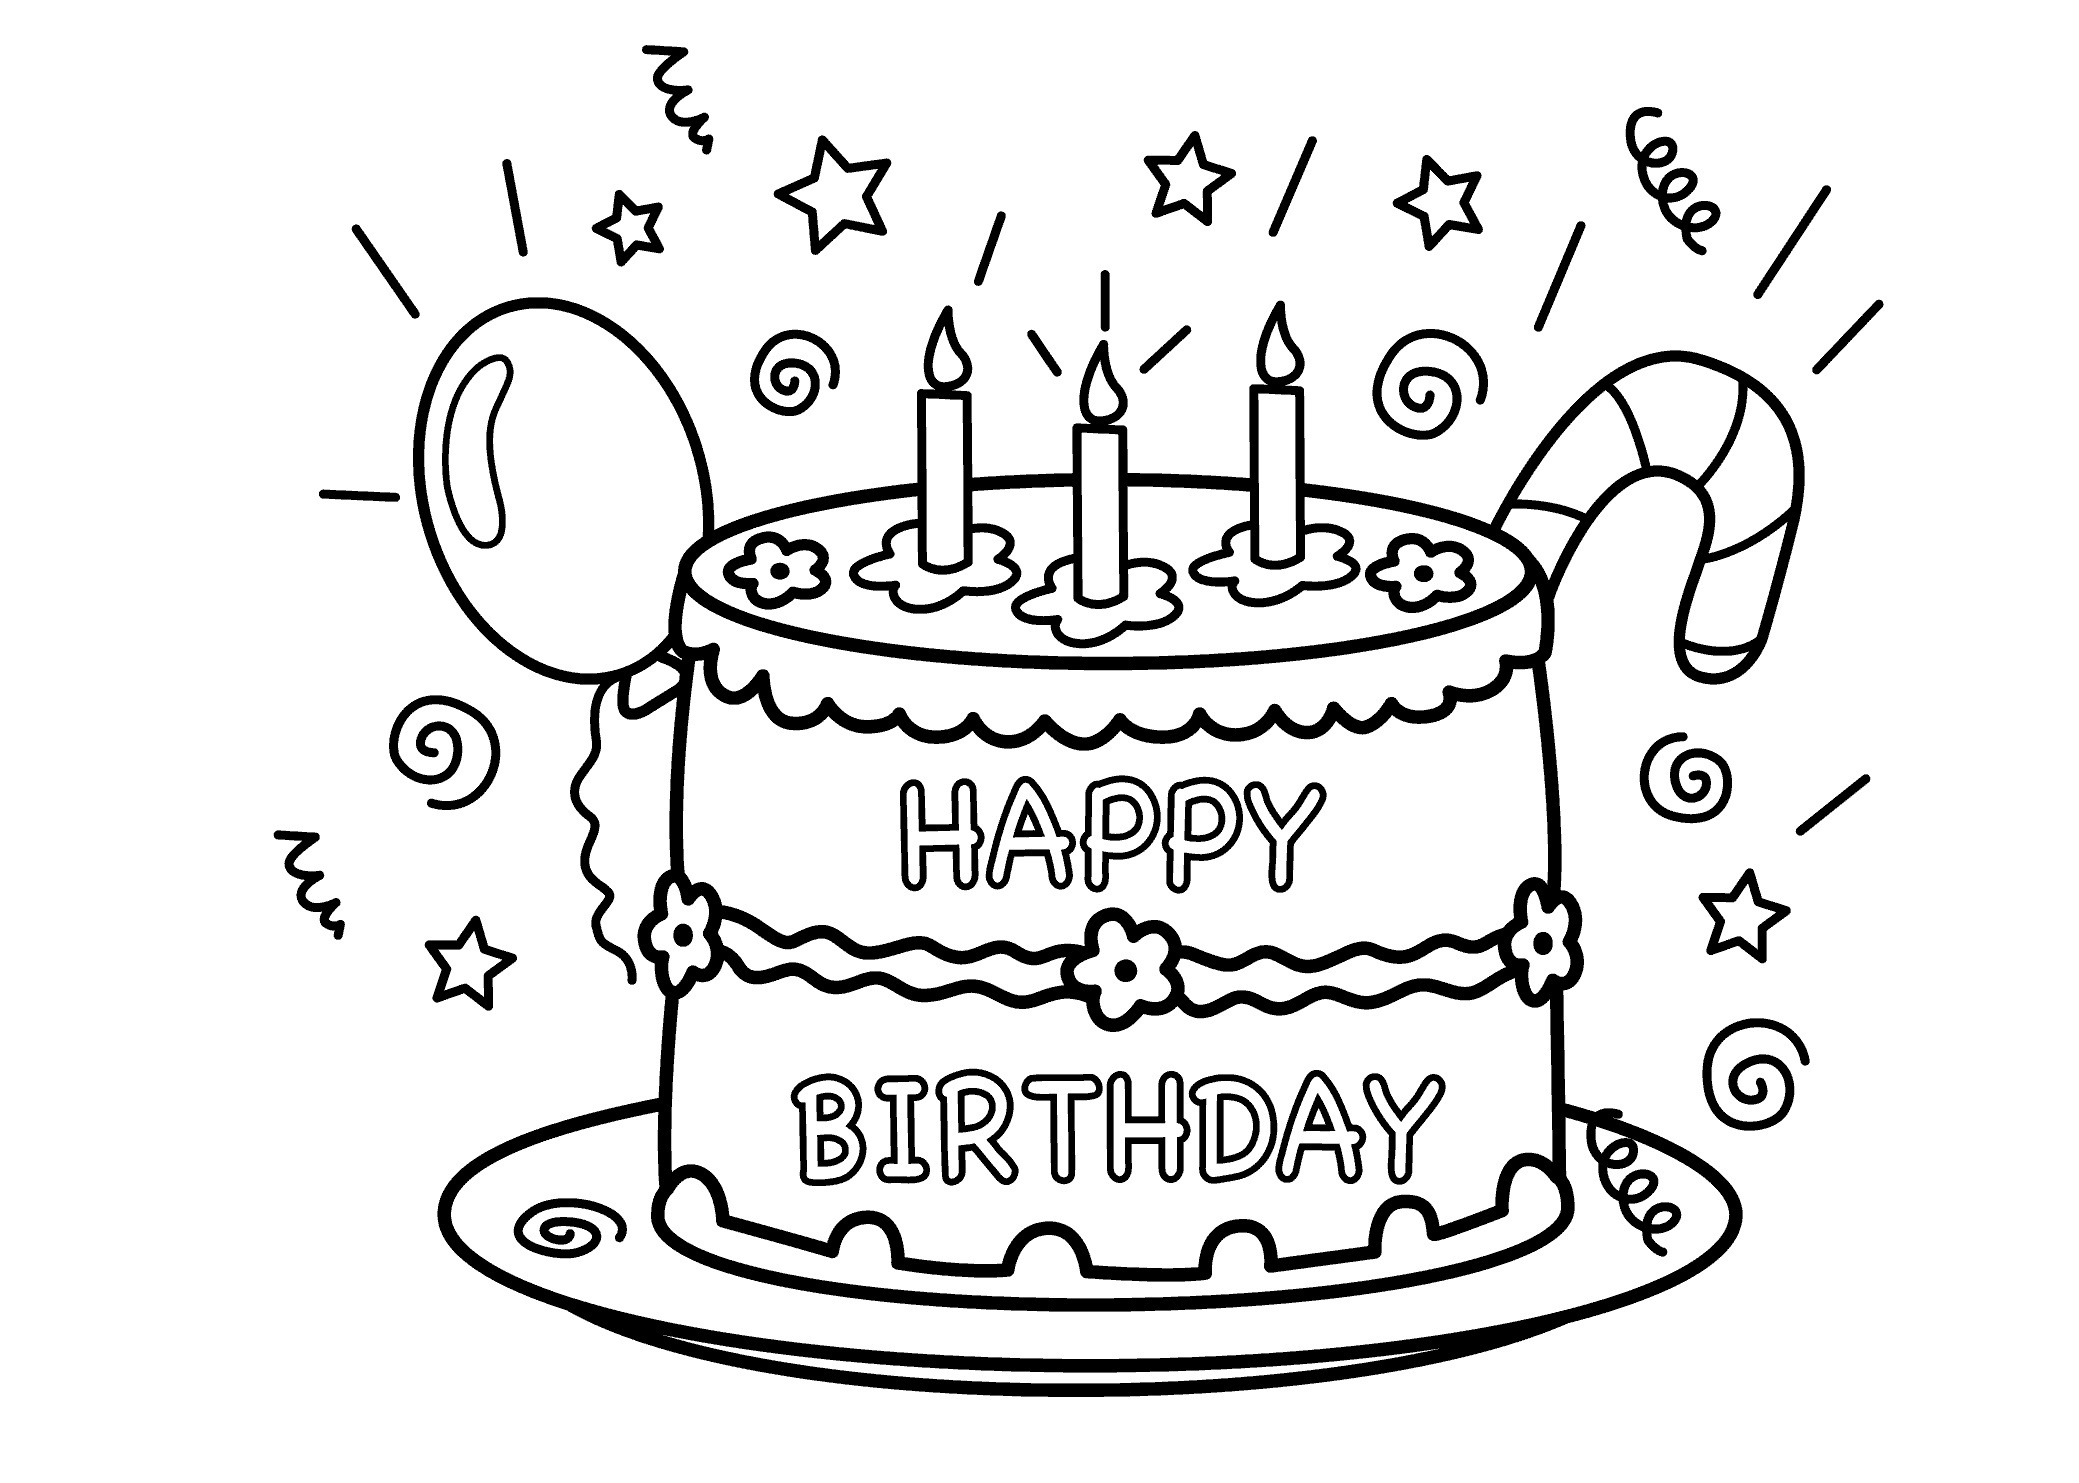 free printable birthday cake coloring pages for kids free printable birthday cake - Free Printable Coloring Pictures